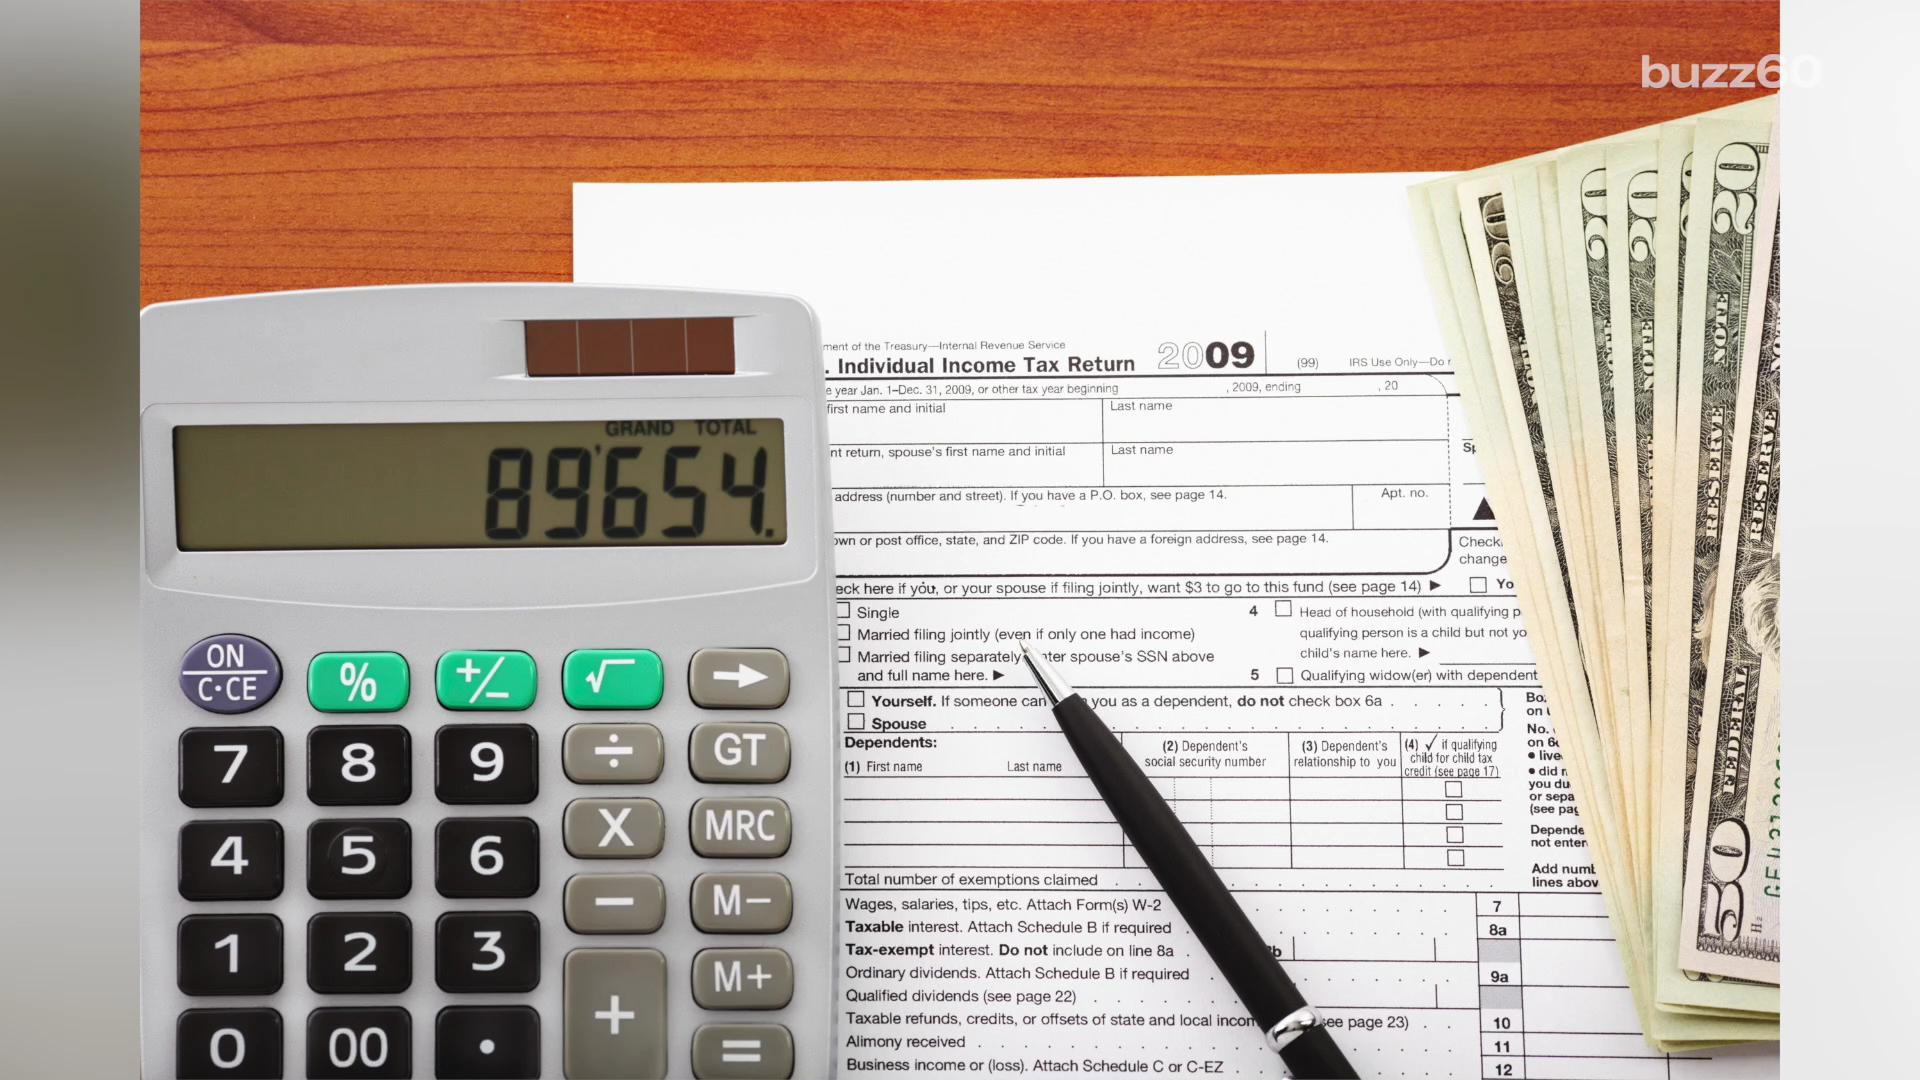 Tax season is upon us and Mara Montalbano (@maramontalbano) has some tips to make filing less painful.